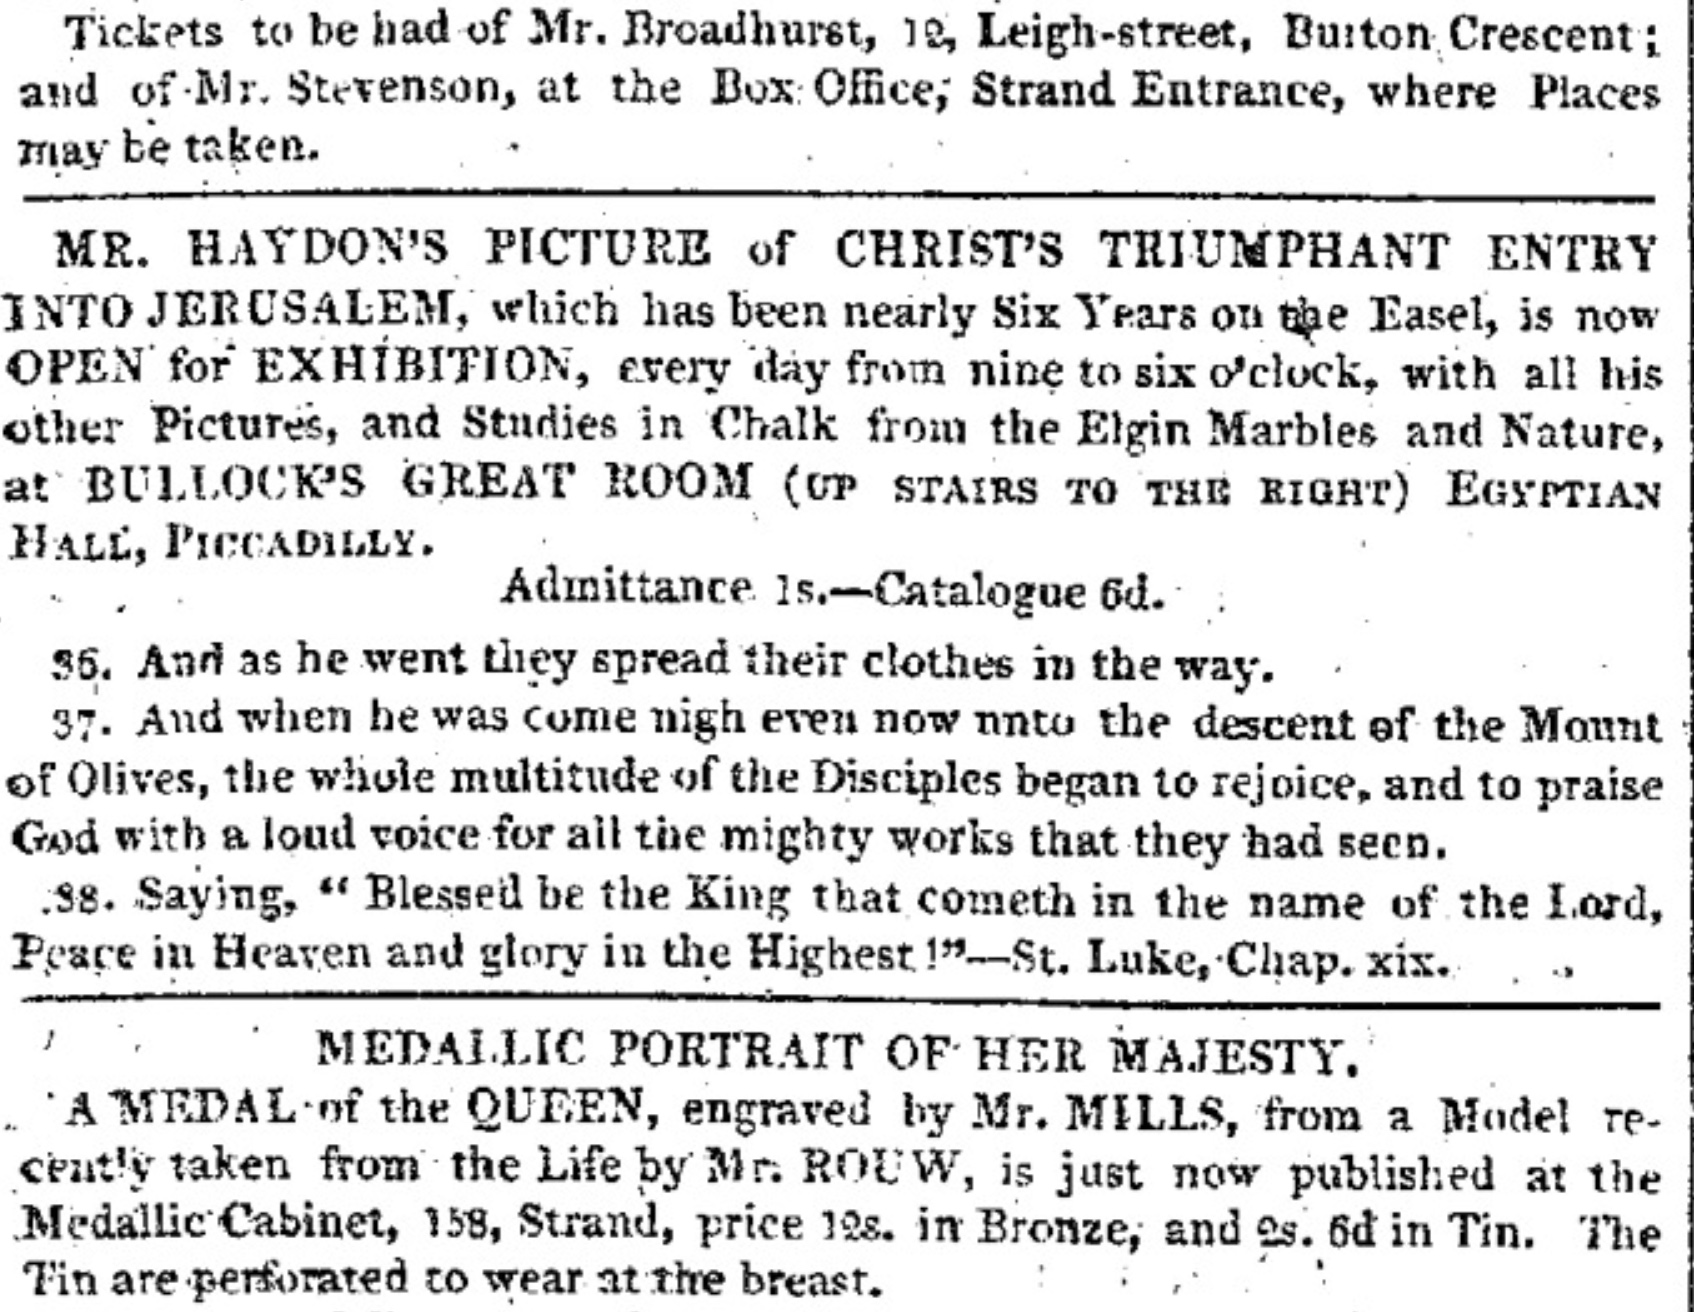 Six Years on the Easel: Haydon's Christ's Triumphant           Entry into Jerusalem,         The Examiner, 1 Oct 1820 (click to enlarge)